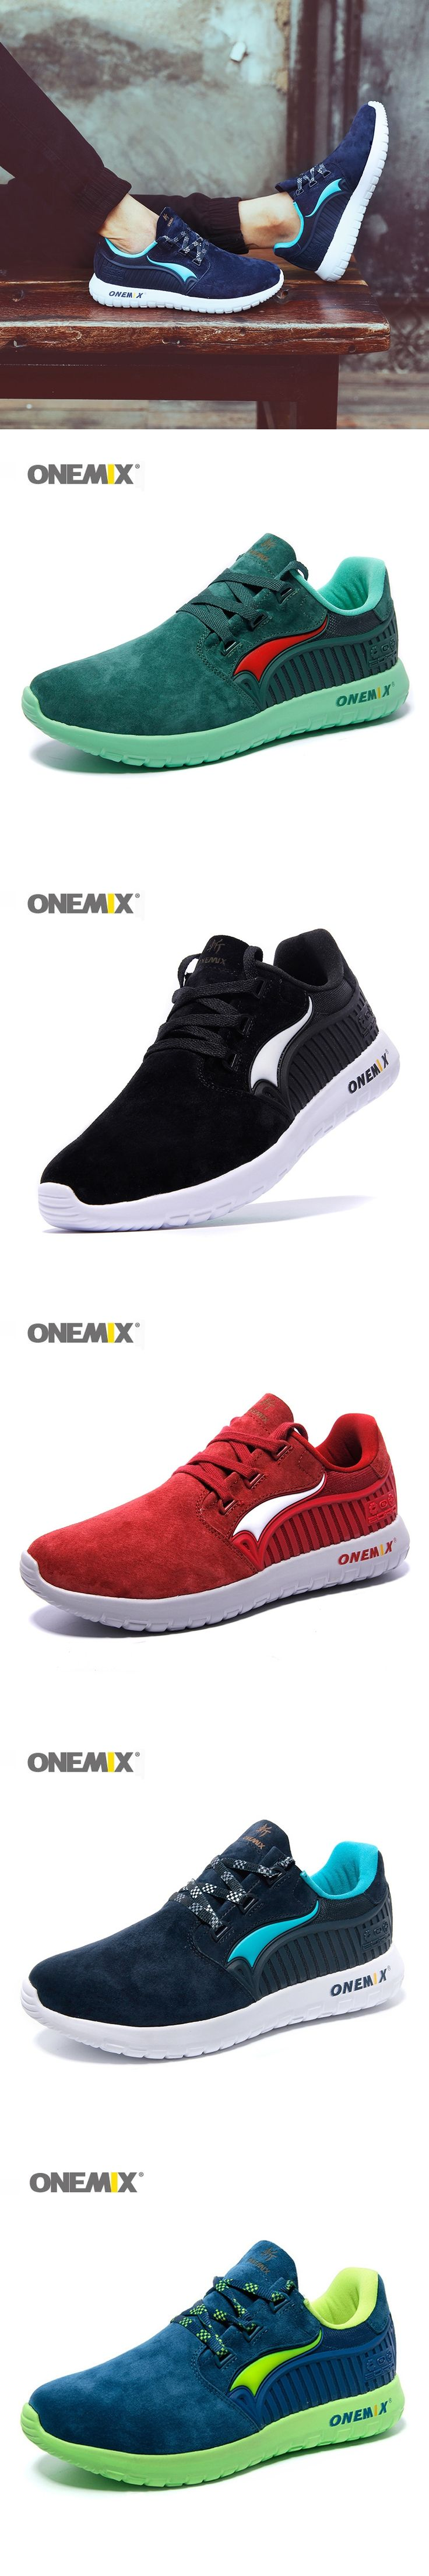 ONEMIX Men's Running Shoes Male chaussures de sport Suede Rubber Comfortable Athletic Shoes for Men Sneakers EUR Size 39-45